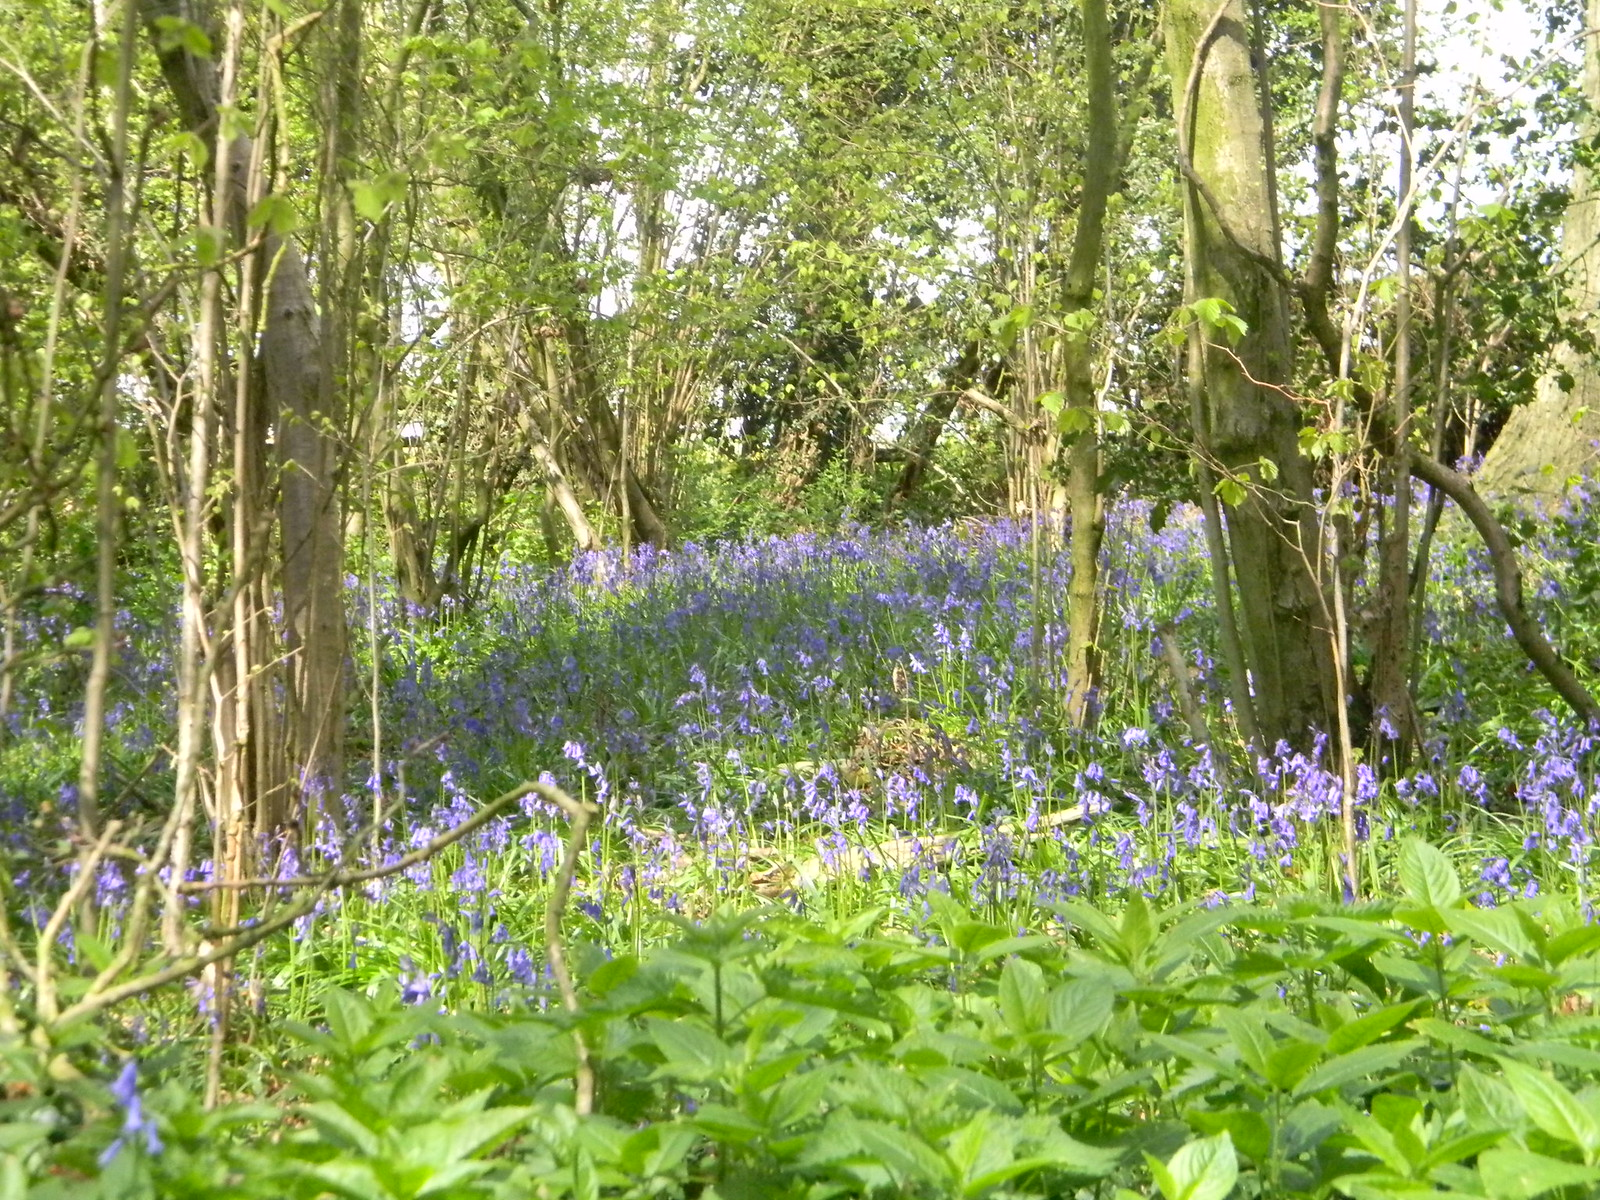 Bluebells Point 14, Pangbourne Circular